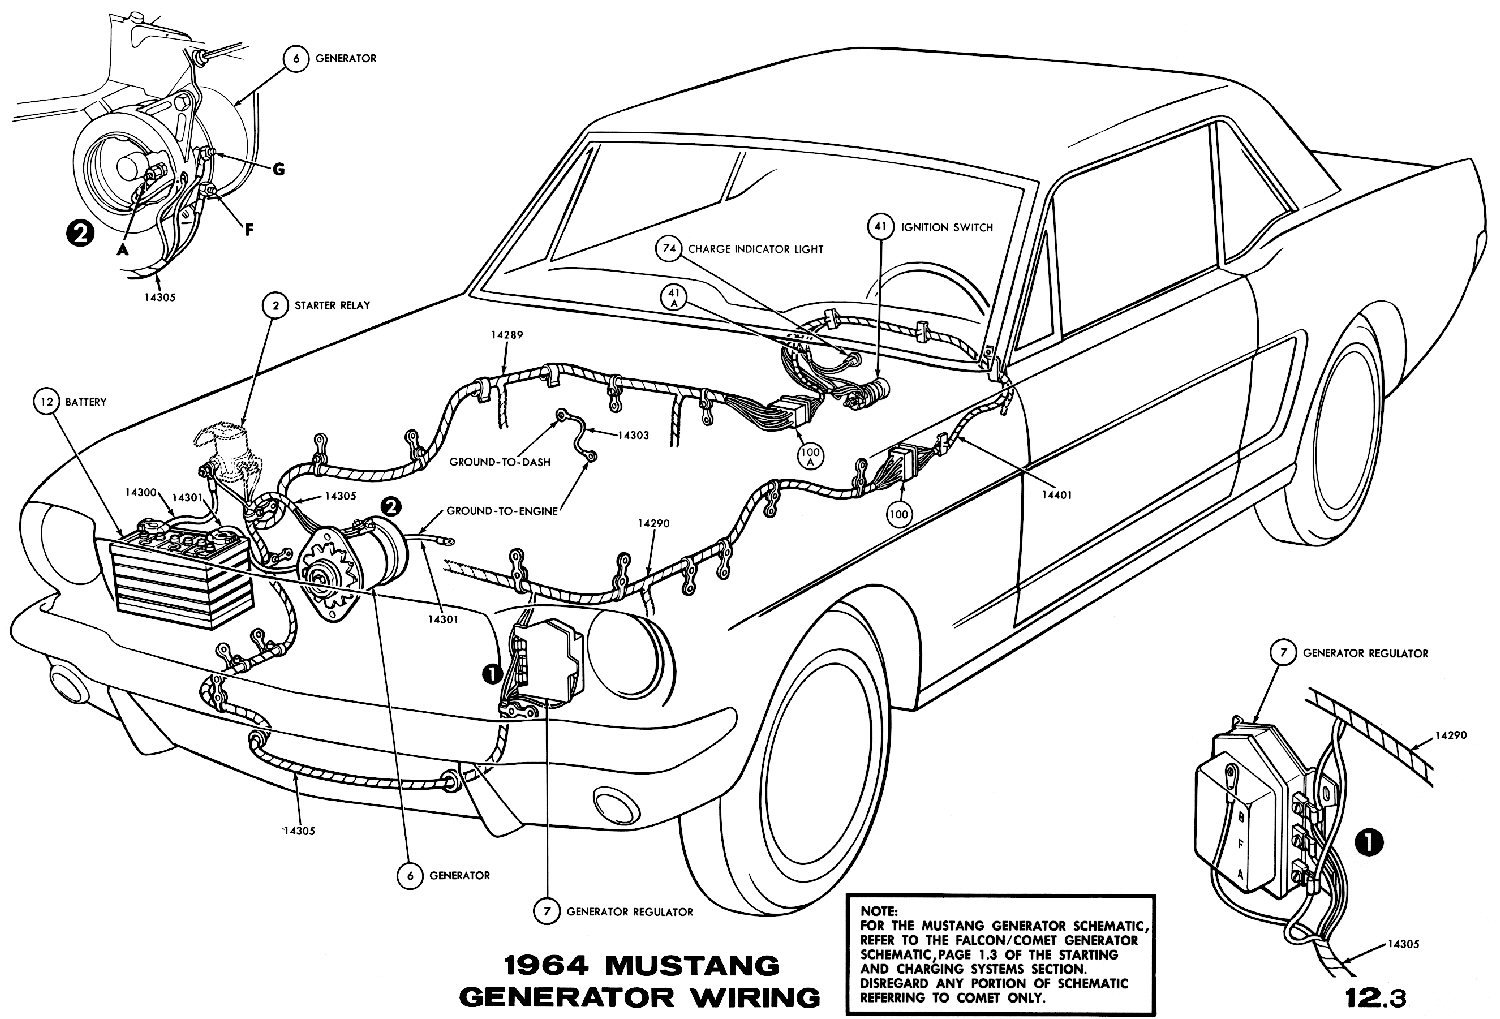 1964 ford mustang wiring diagram detailed schematics diagram rh  antonartgallery com Ford F-250 Windshield Wiper Wiring Diagram 77 Ford  Ranchero Windshield ...